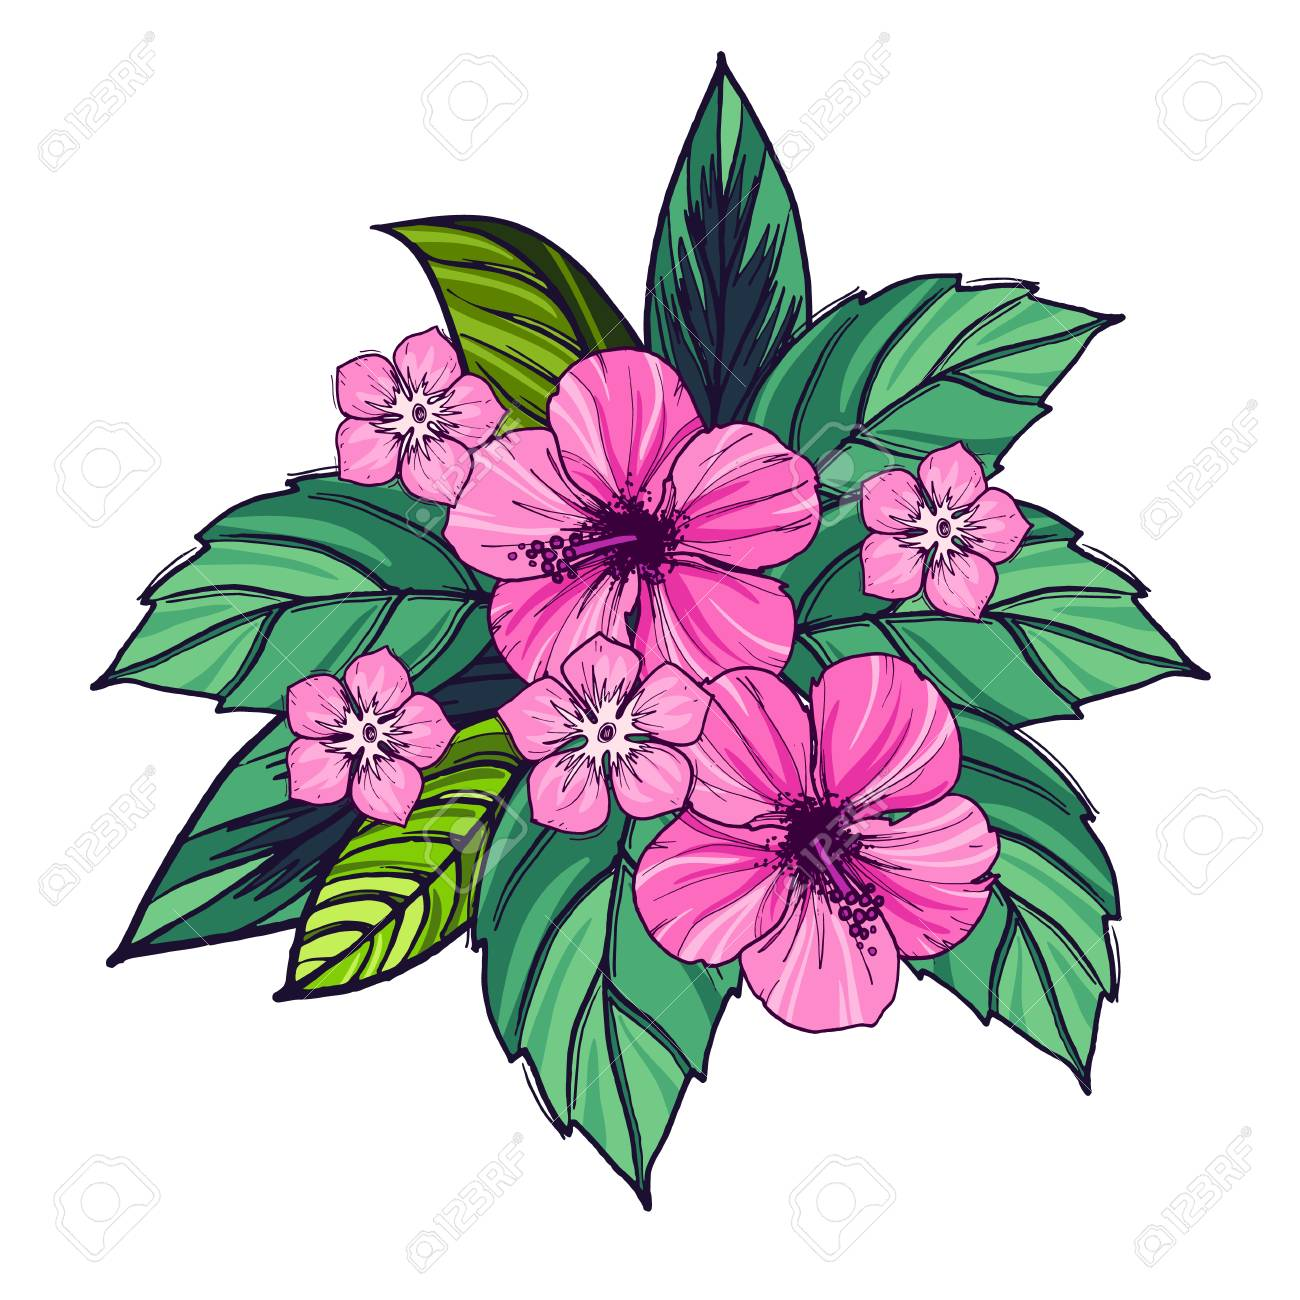 Tropical Bouquet Of Hibiscus Flowers And Leaves Vector Illustration